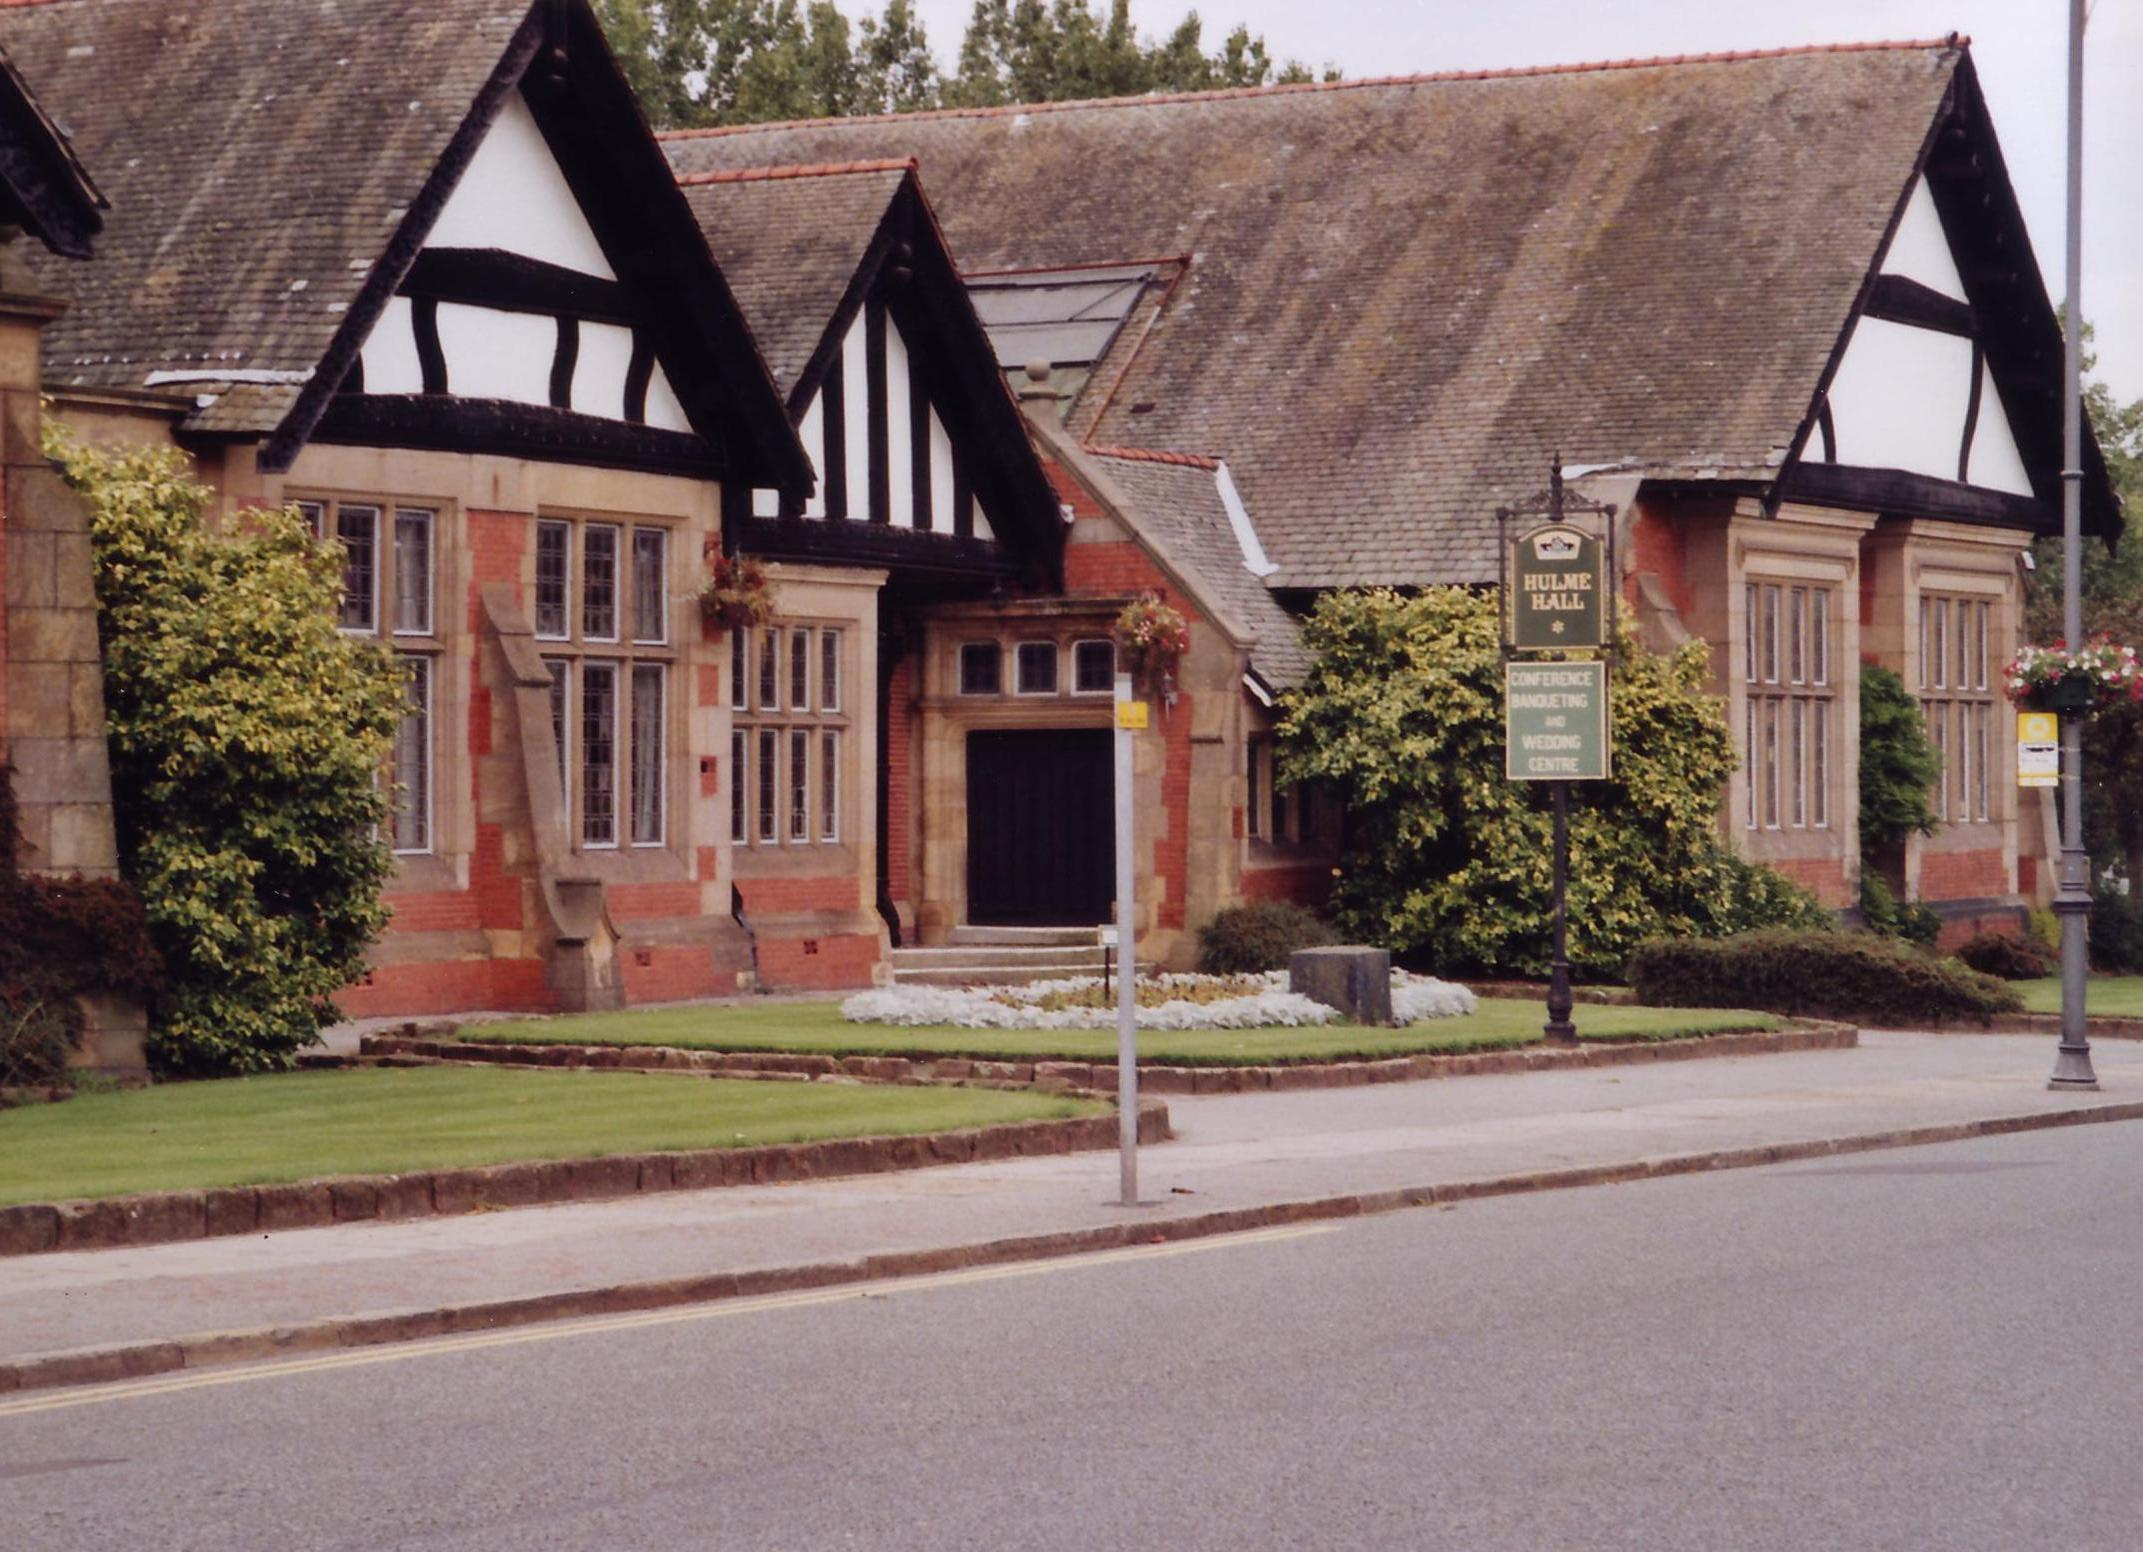 Port_Sunlight_2004-08-27_Hulme_Hall